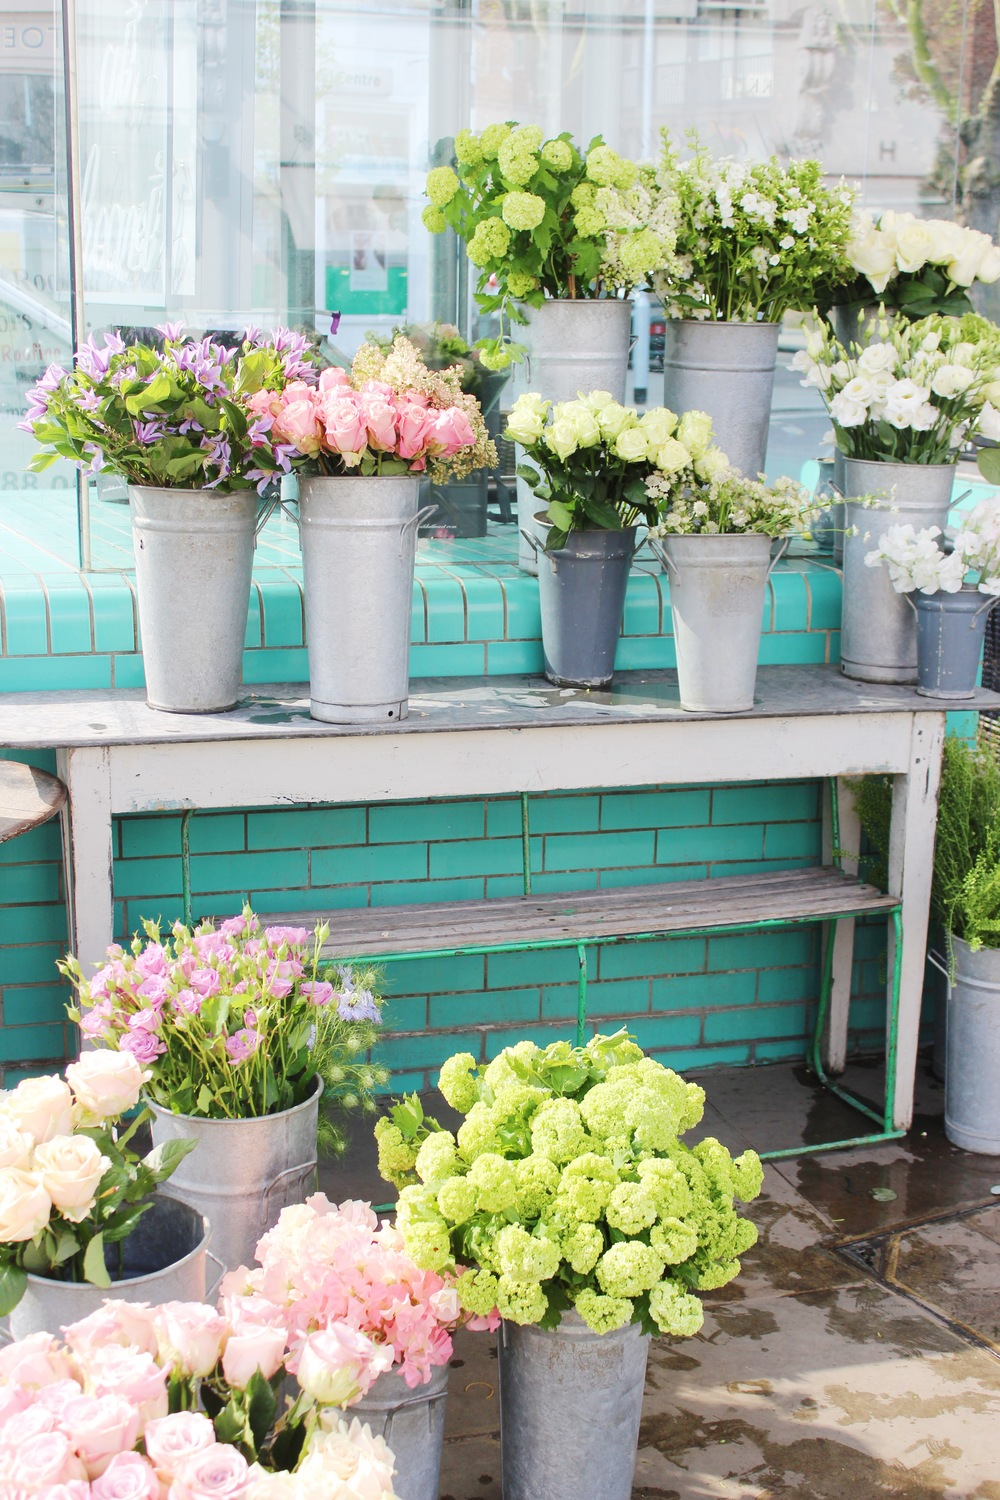 Notting Hill Charm - Wild at Heart Flower Shop | Sundays and Somedays